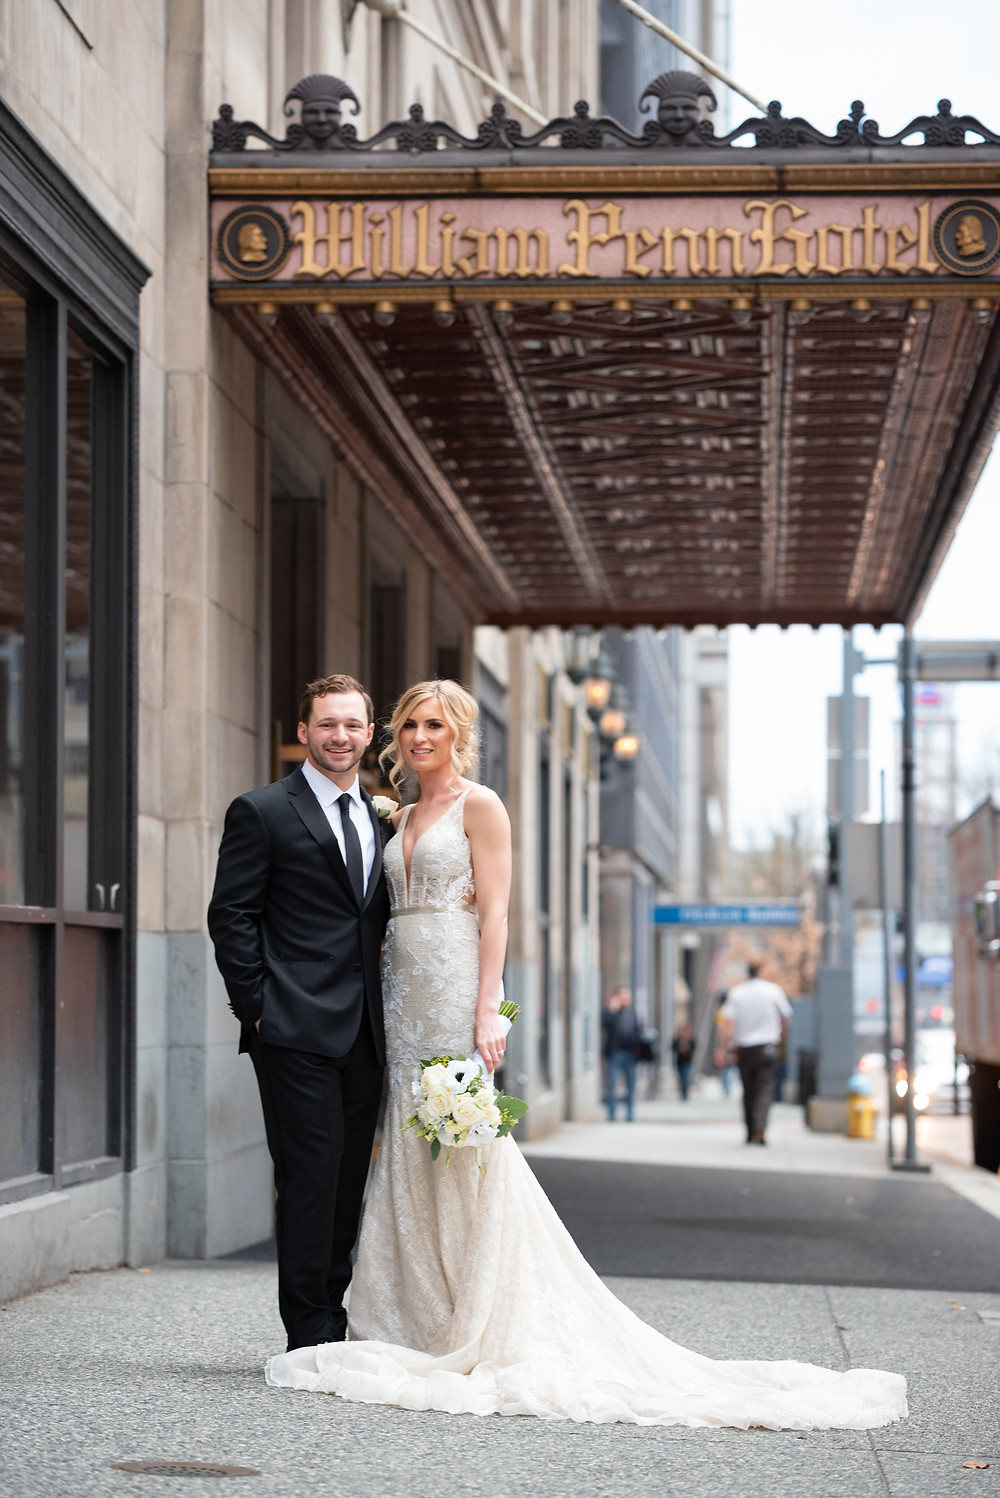 Wedding portraits outside of the Omni WIliam Penn Hotel in Pittsburgh